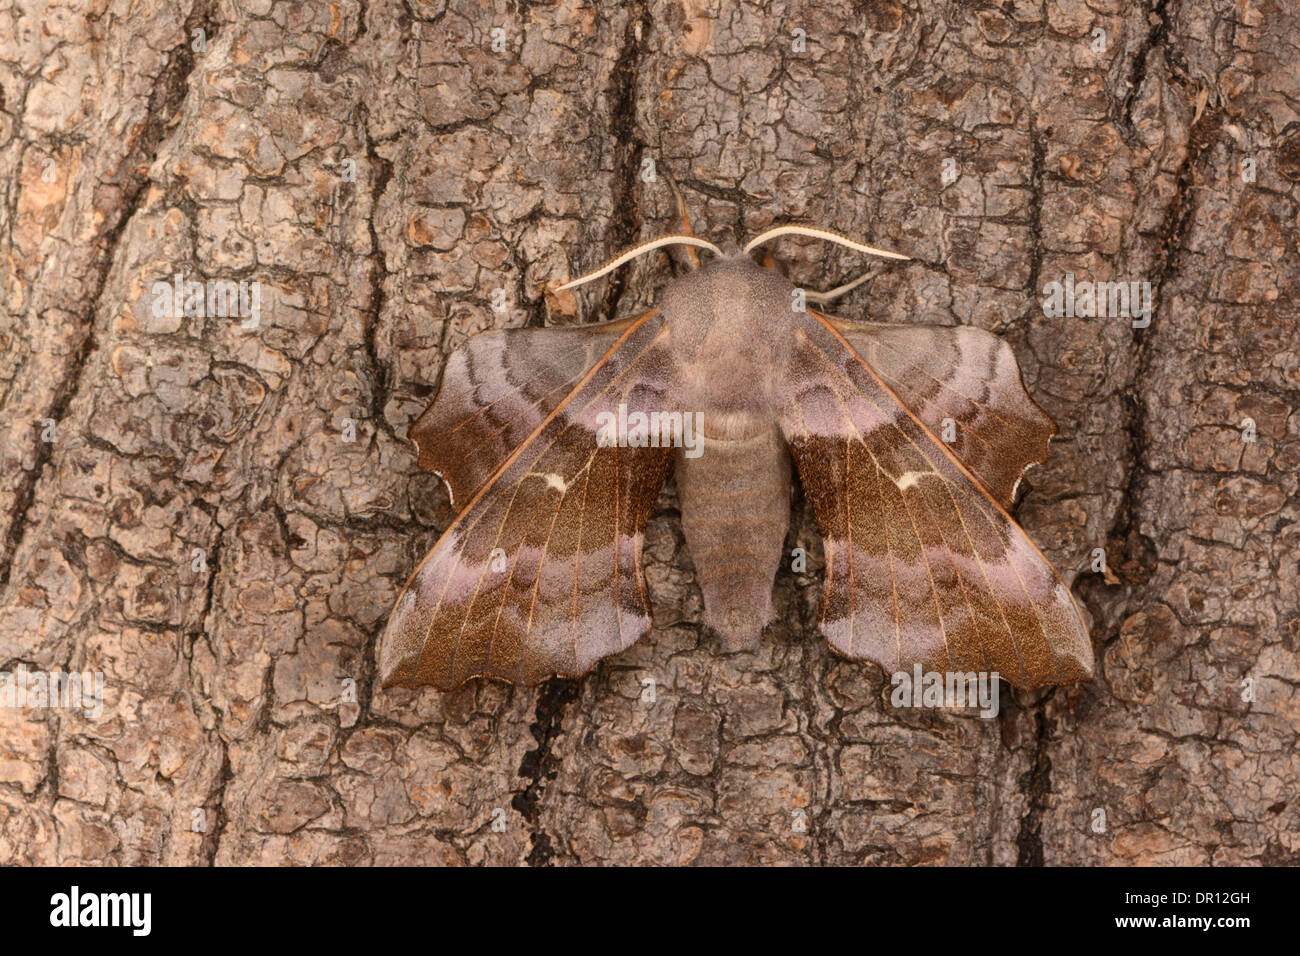 Poplar Hawkmoth (Laothoe populi) pink coloured adult at rest on tree trunk, Oxfordshire, England, July - Stock Image